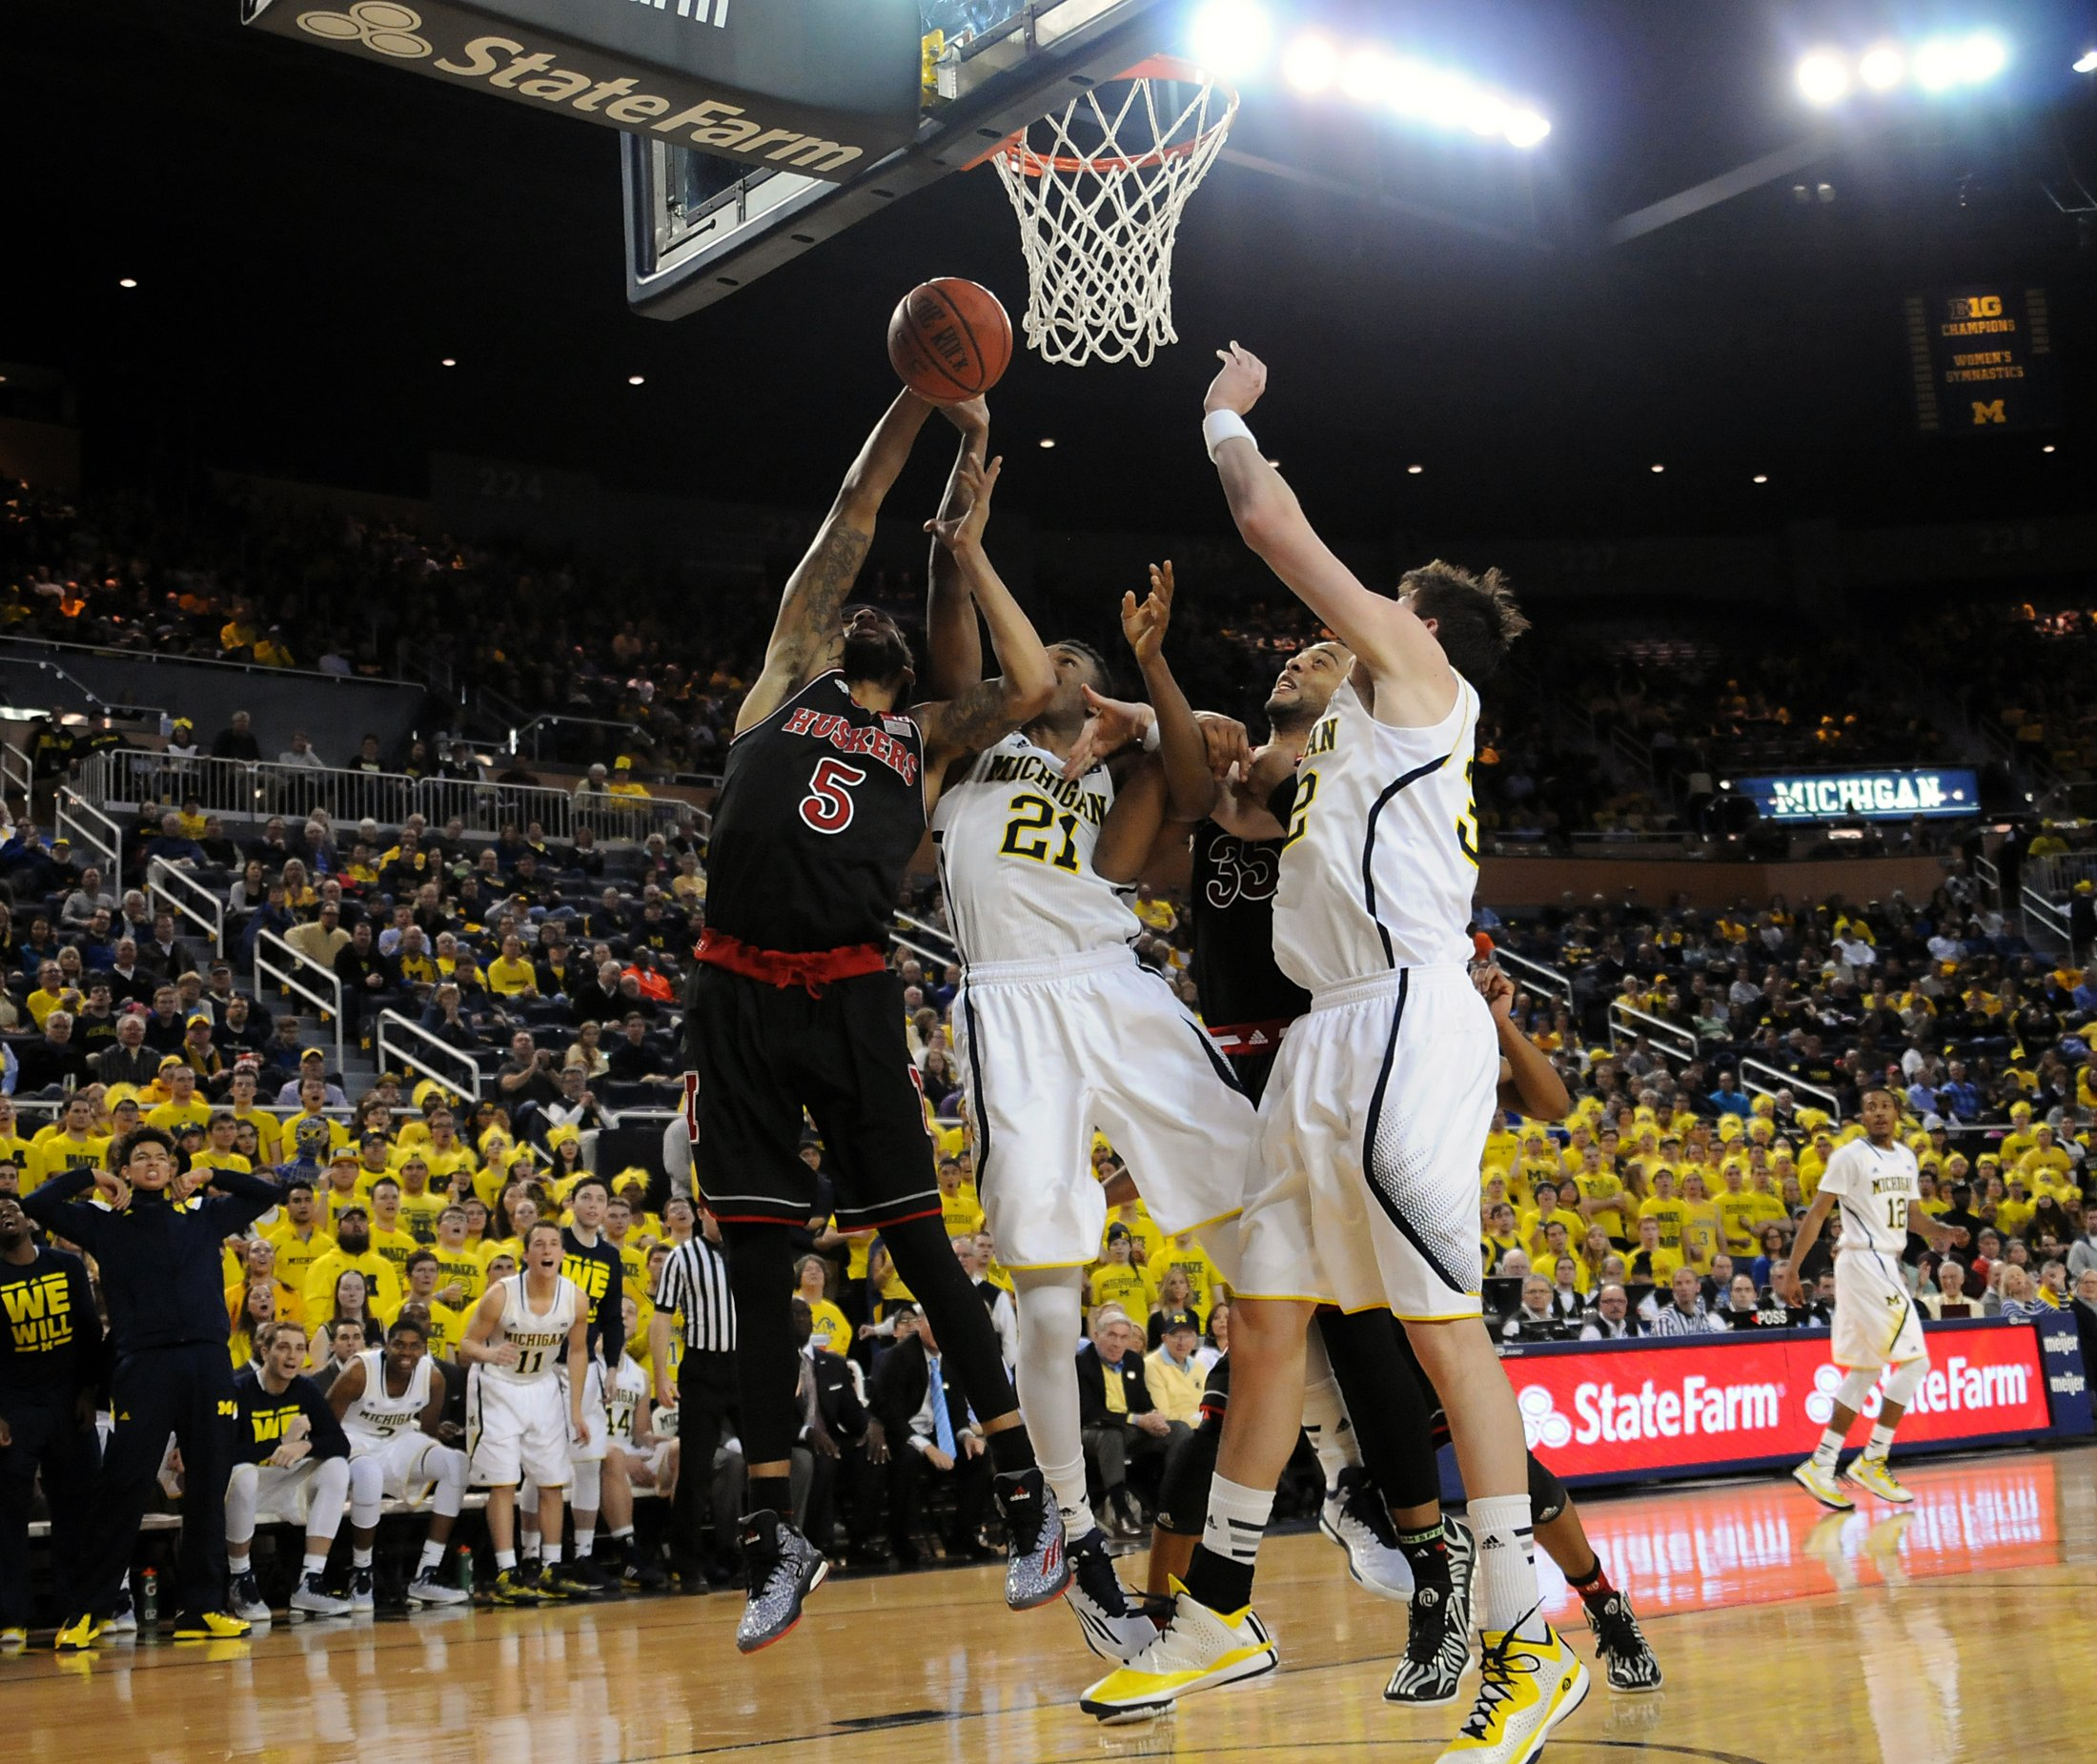 Michigan 58, Nebraska 44 – #15